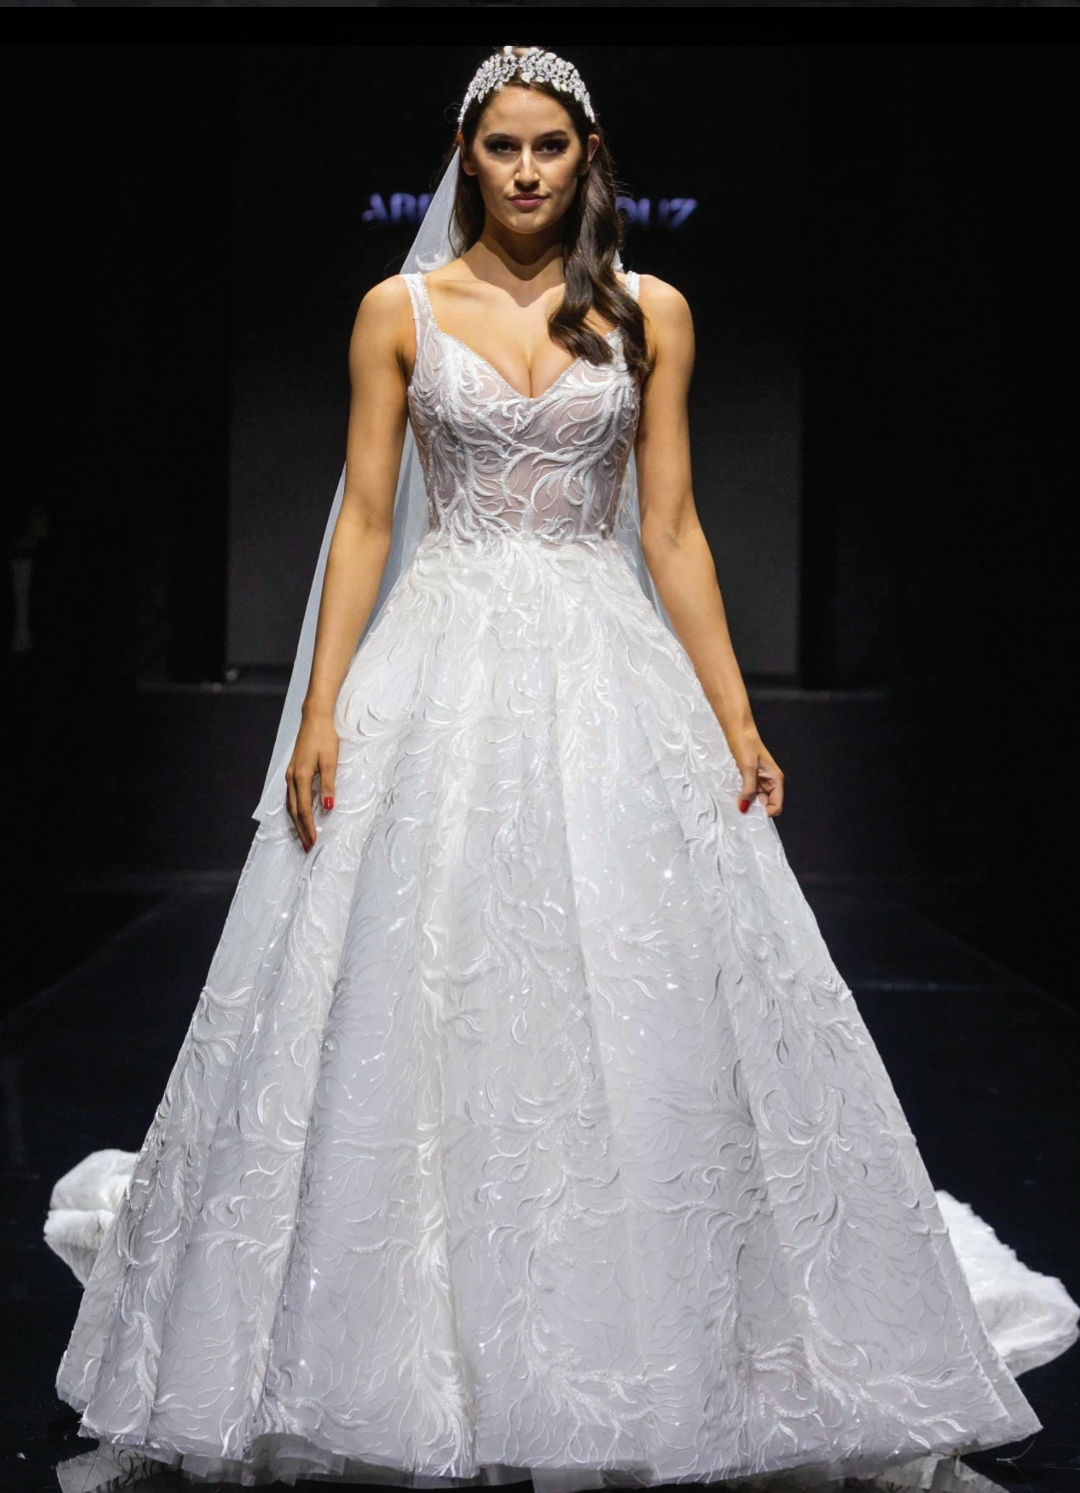 wedding dress by Abed Mahouz